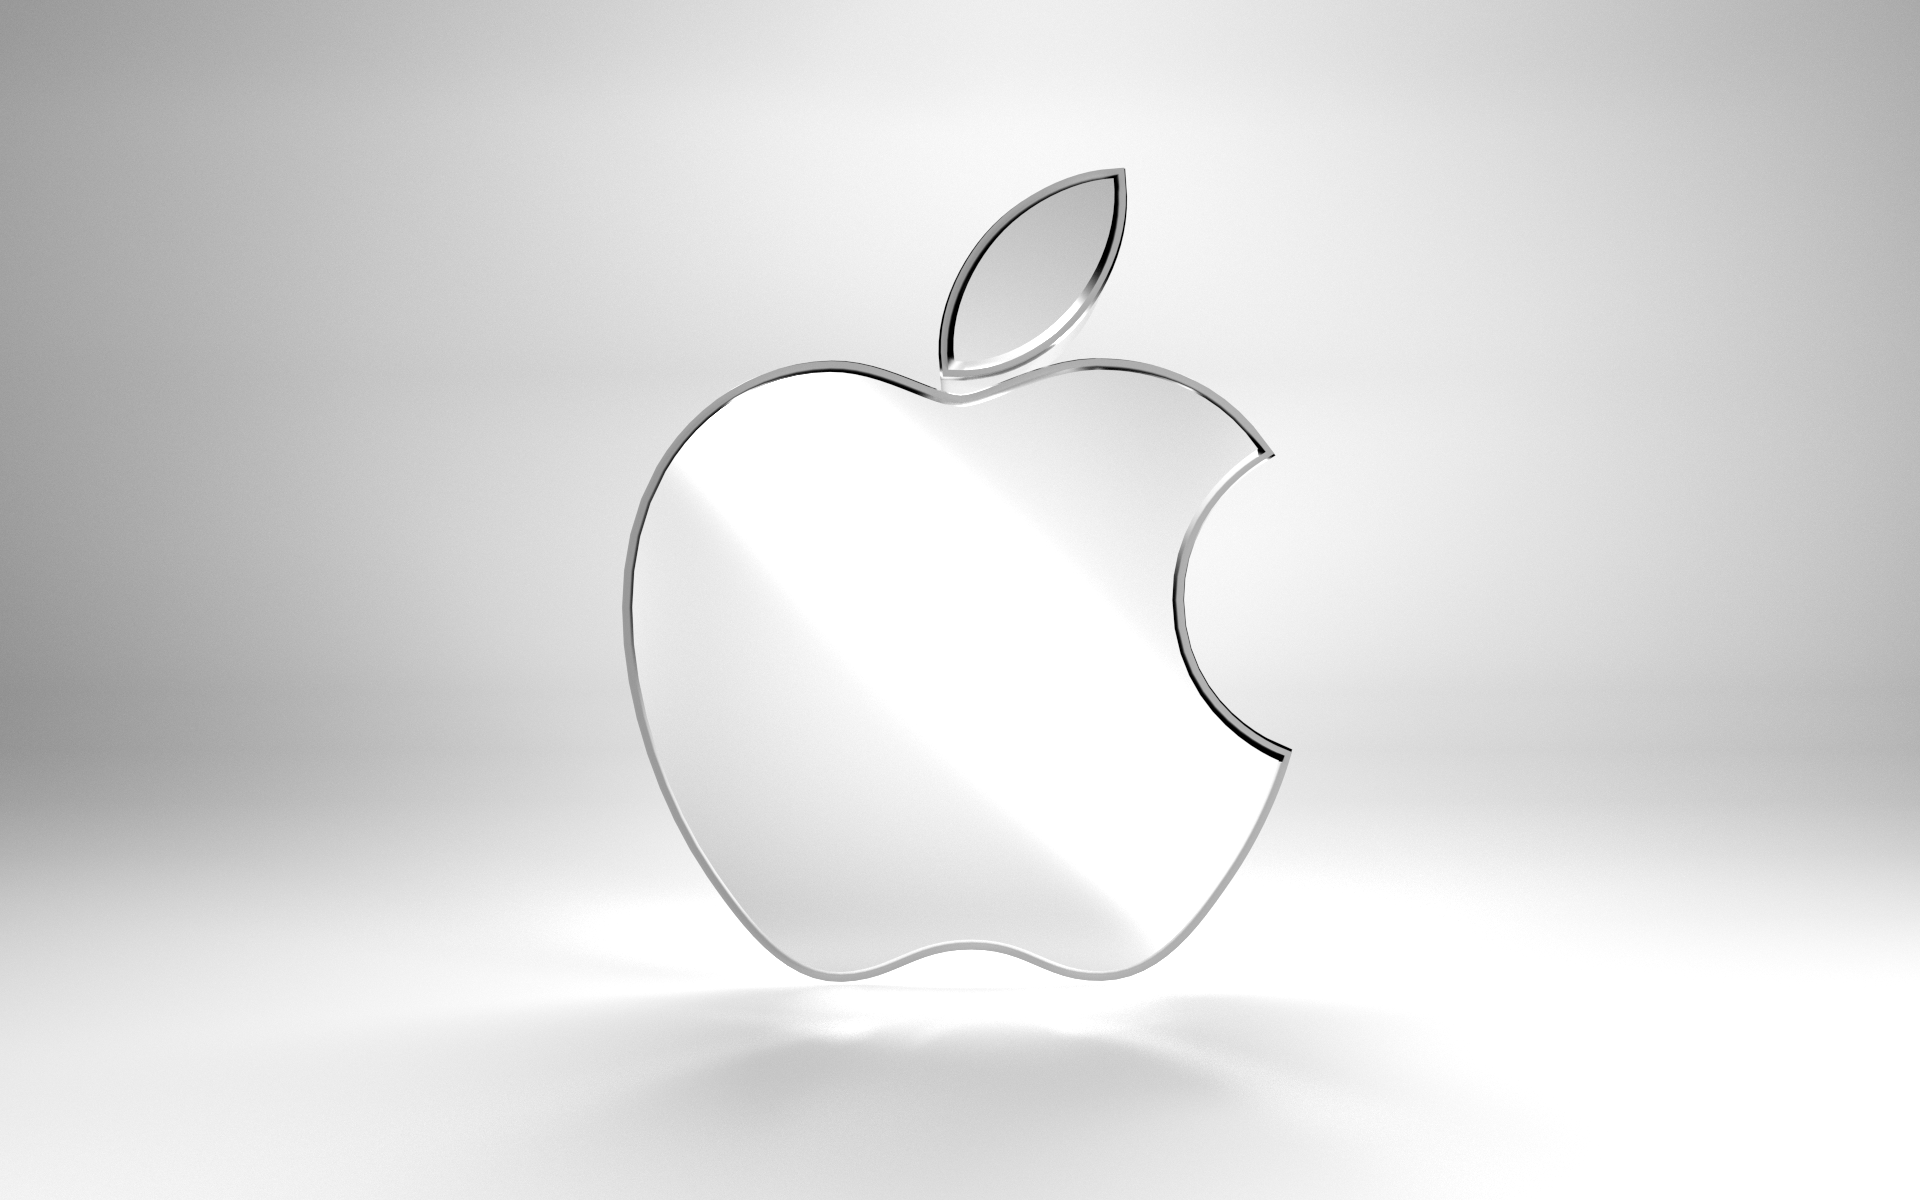 Metallic Apple Logo by Beanz239 Metallic Apple Logo by Beanz239